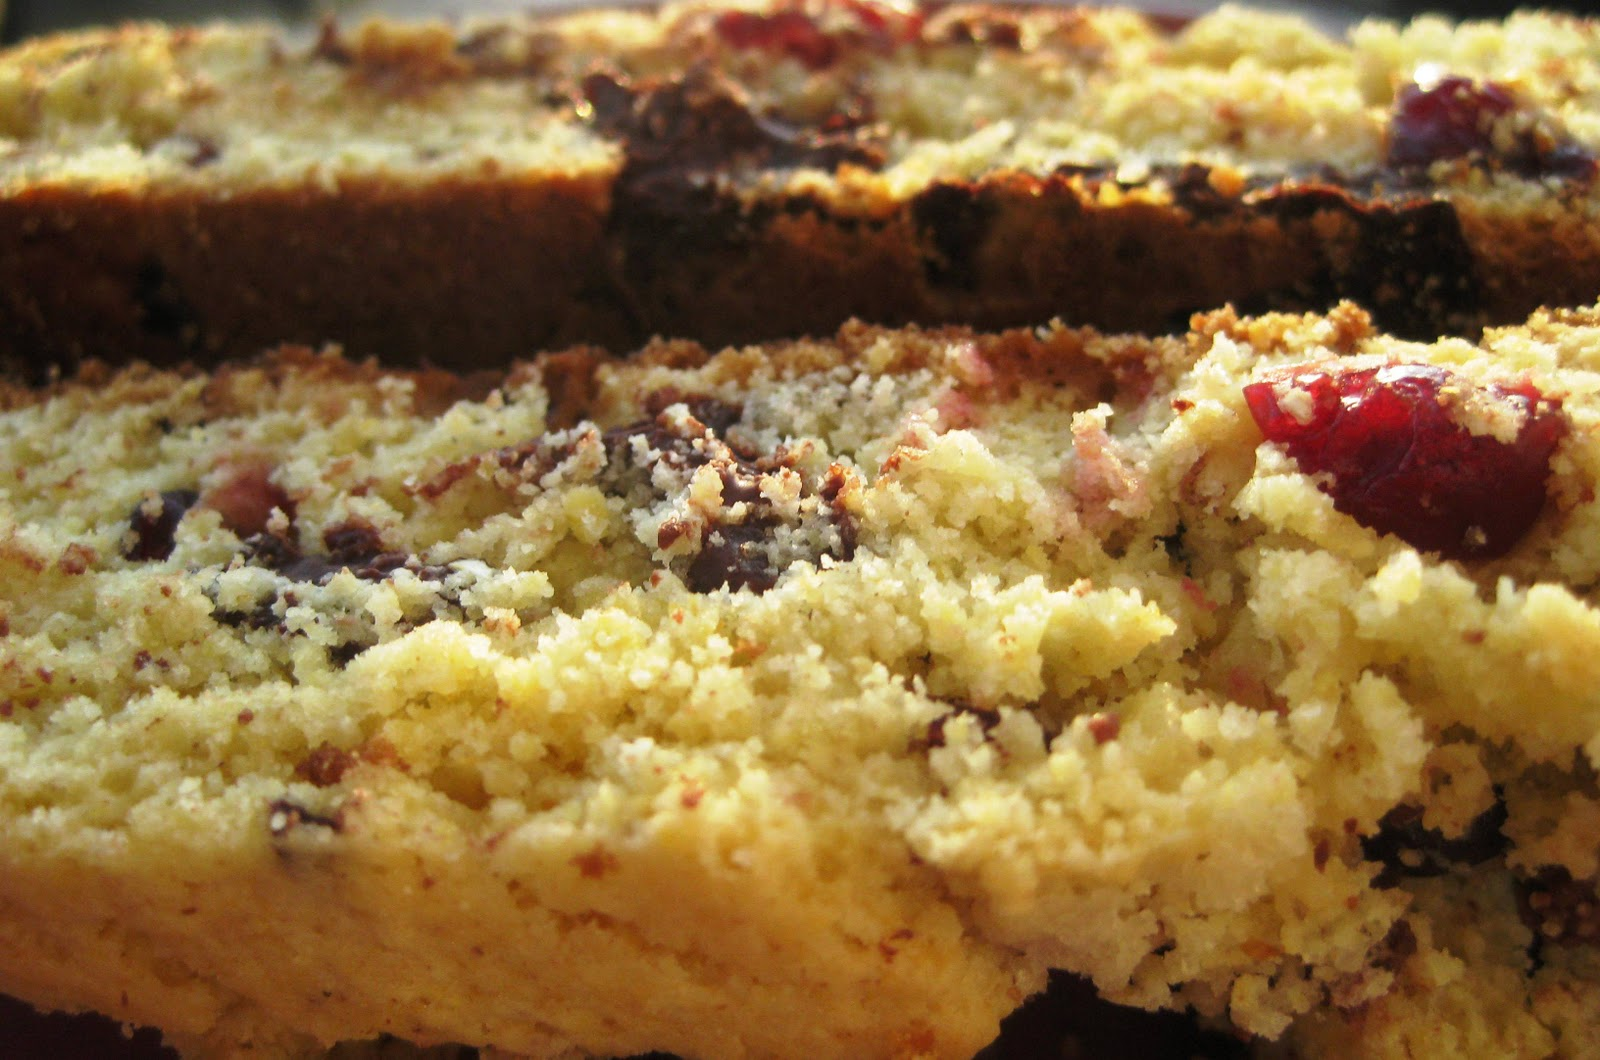 Cornmeal Biscotti with Dried Fruit and Chocolate